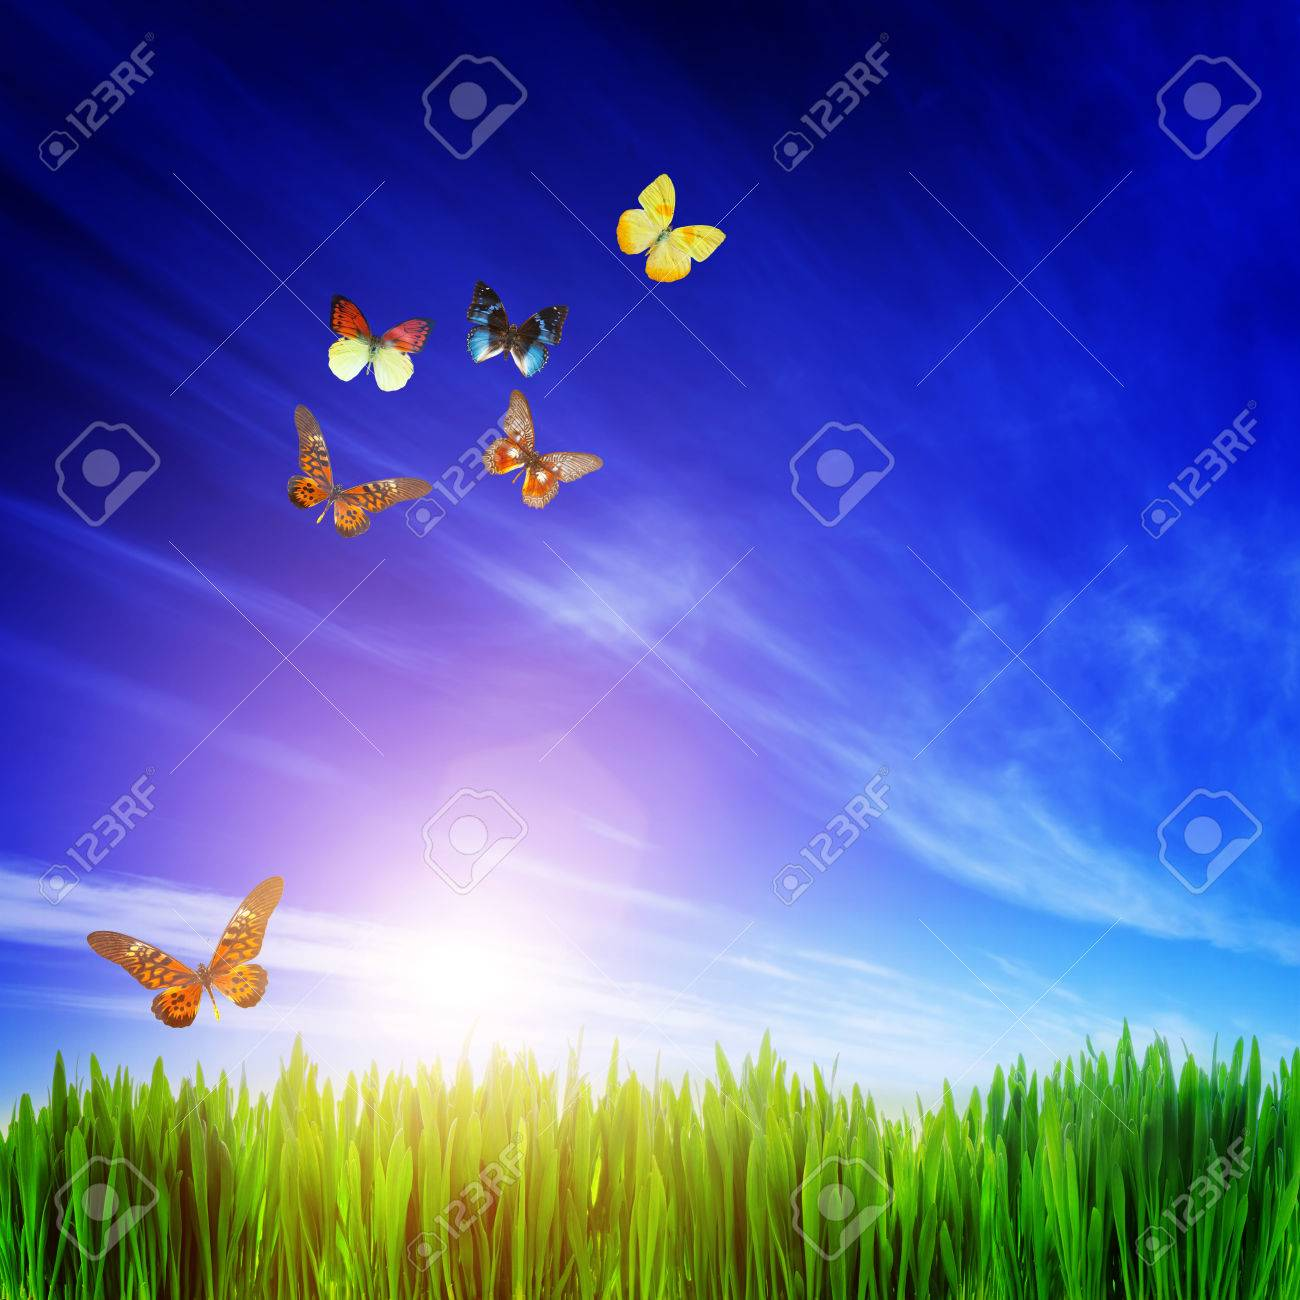 High Resolution Image Of Fresh Green Grass Flying Butterfly Stock Photo Picture And Royalty Free Image Image 34382764